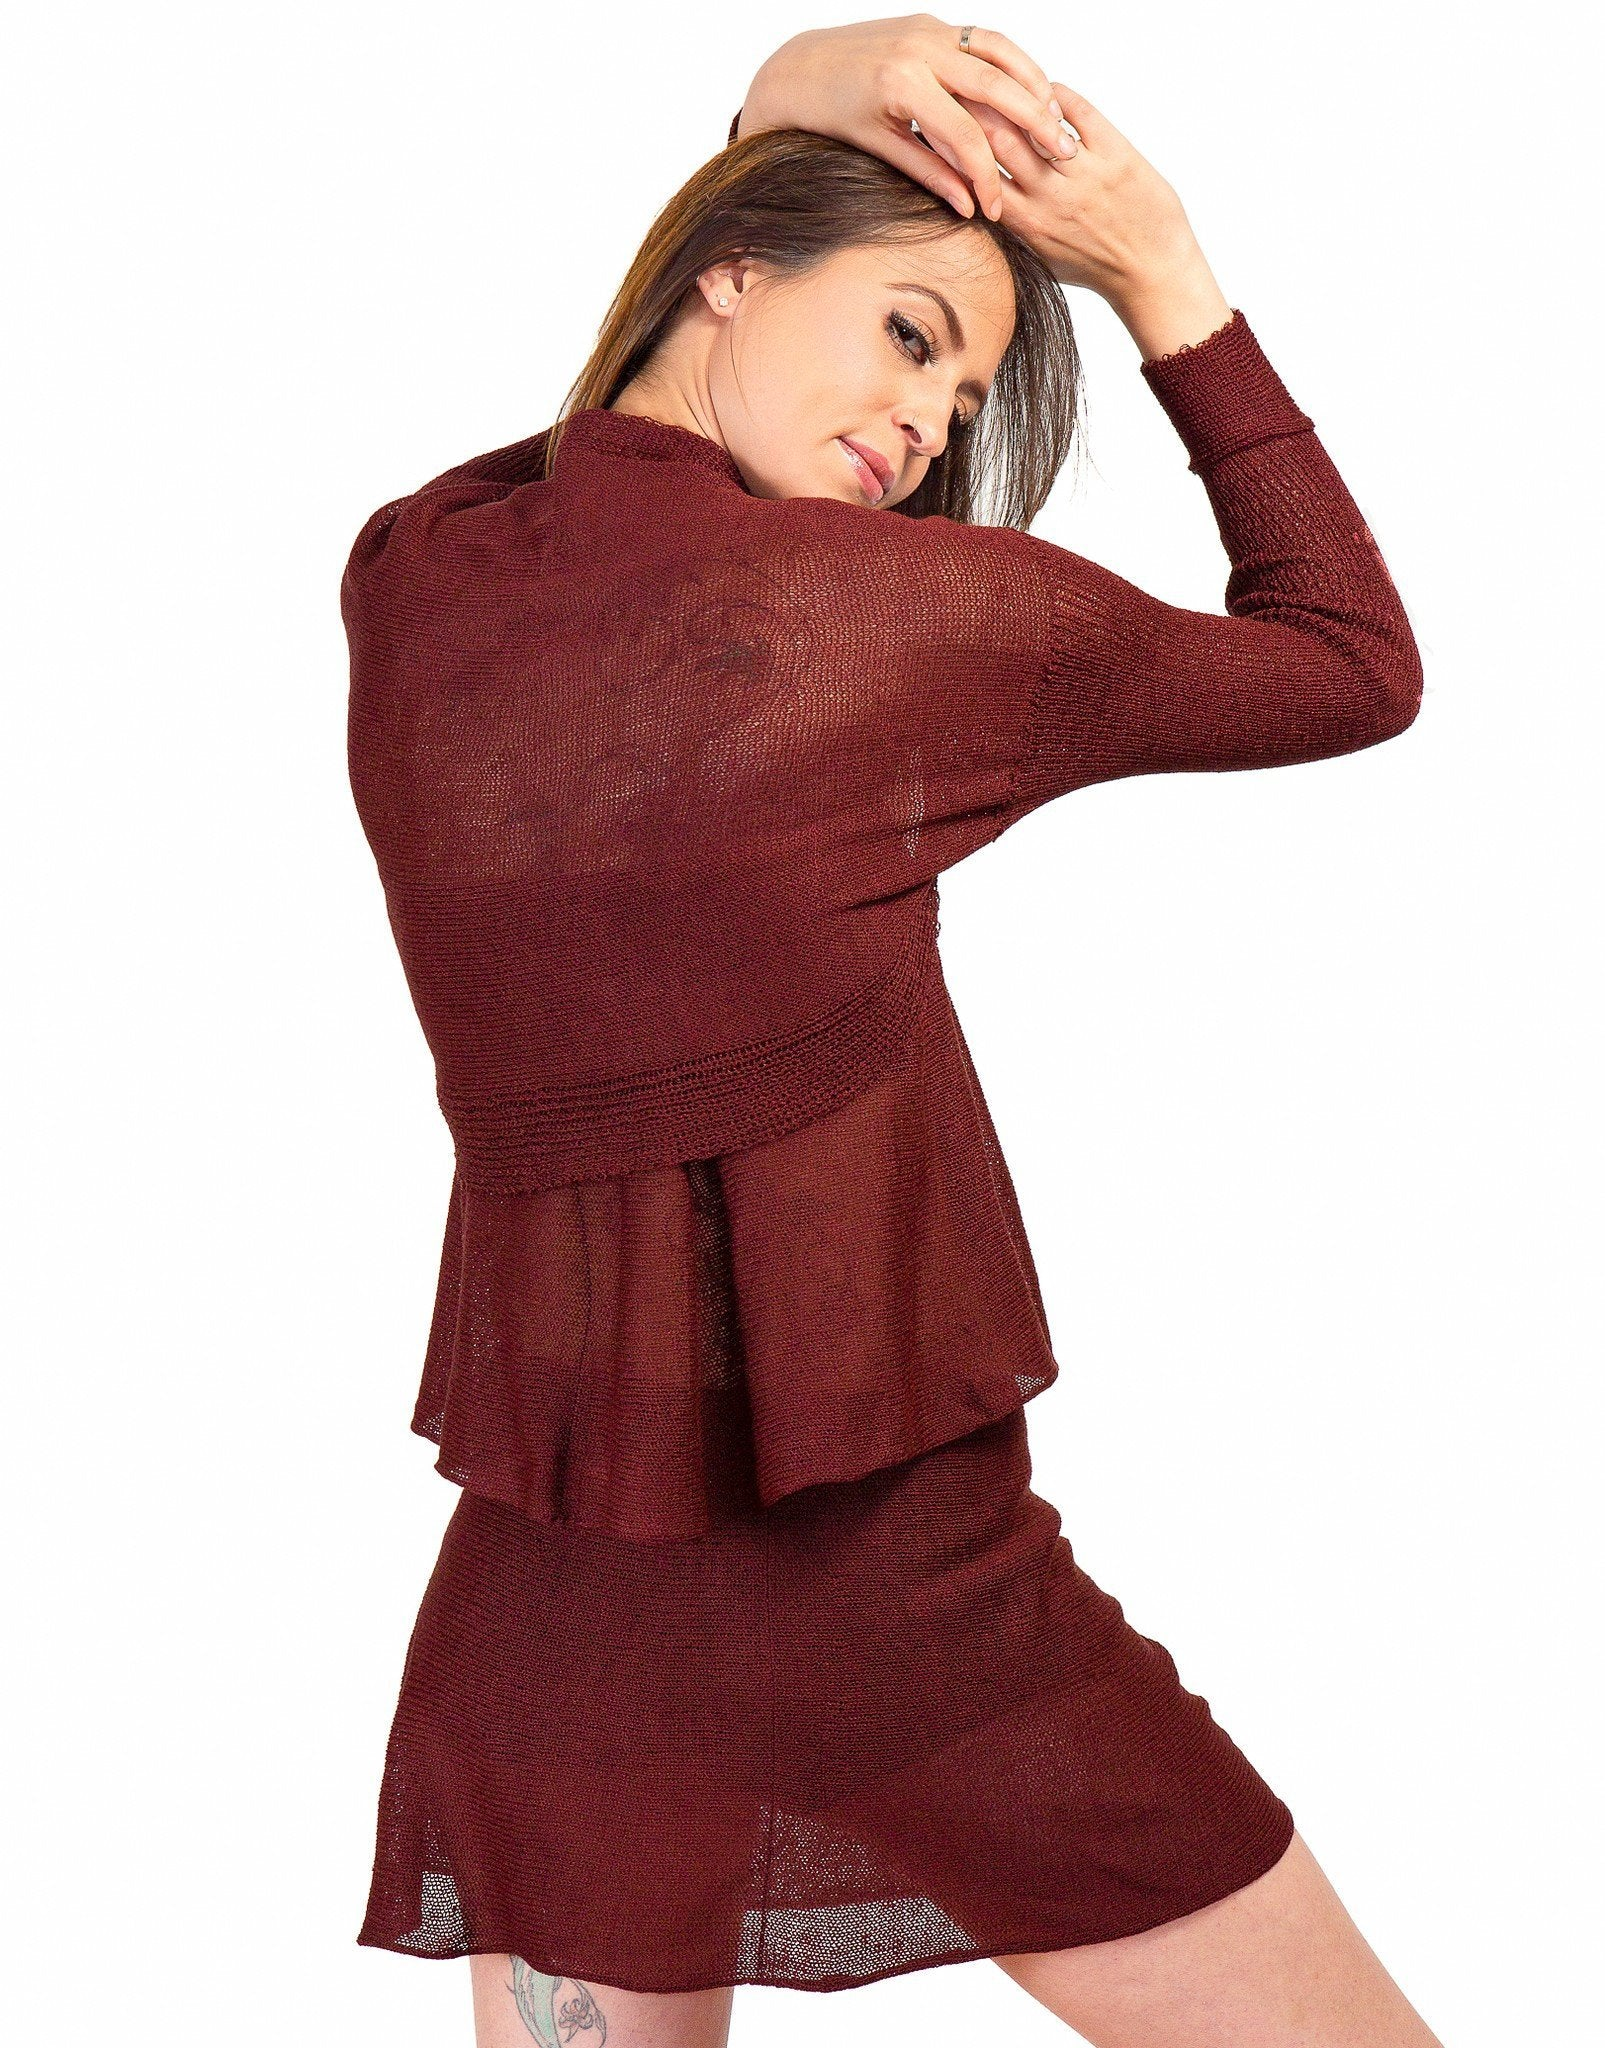 New York Black - KrinkleSpun / Small Drape Shrug Knit KrinkleSpun by KD dance New York Made In USA @KDdanceNewYork #MadeInUSA - 1